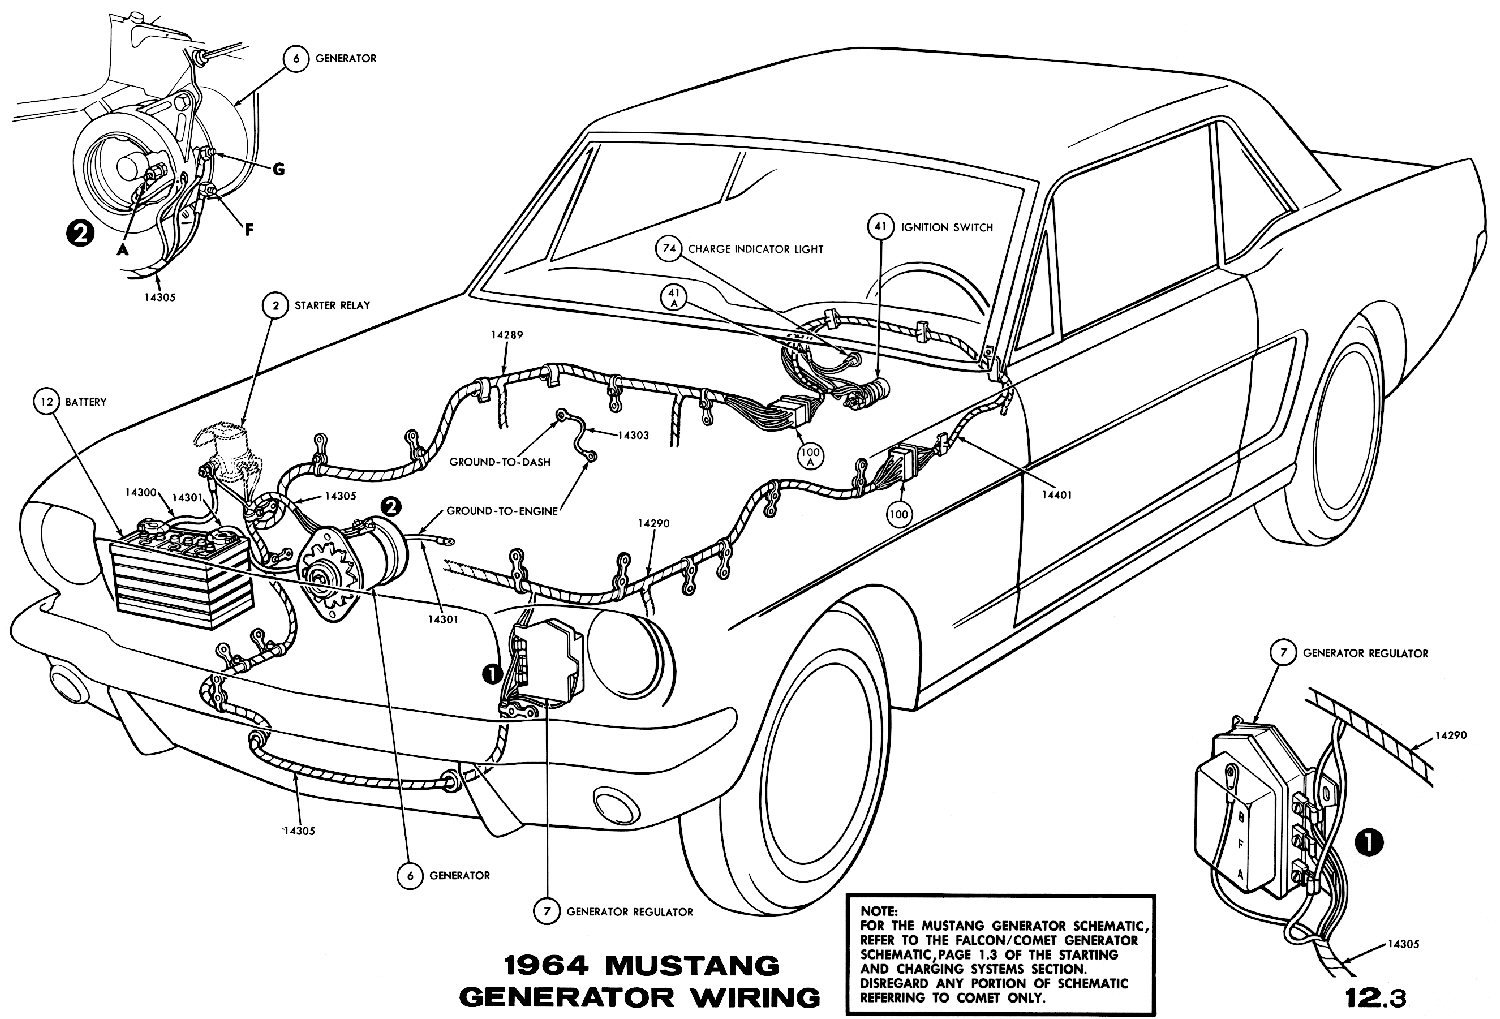 1007265 Wiring Diagram 1951 F 1 A further Schematics c in addition 48avy Ford Thunderbird Fuse Wires Turn Signals together with Trl also 966863 1991 Ford F350 Wiring Schematic. on 1966 ford thunderbird fuse box